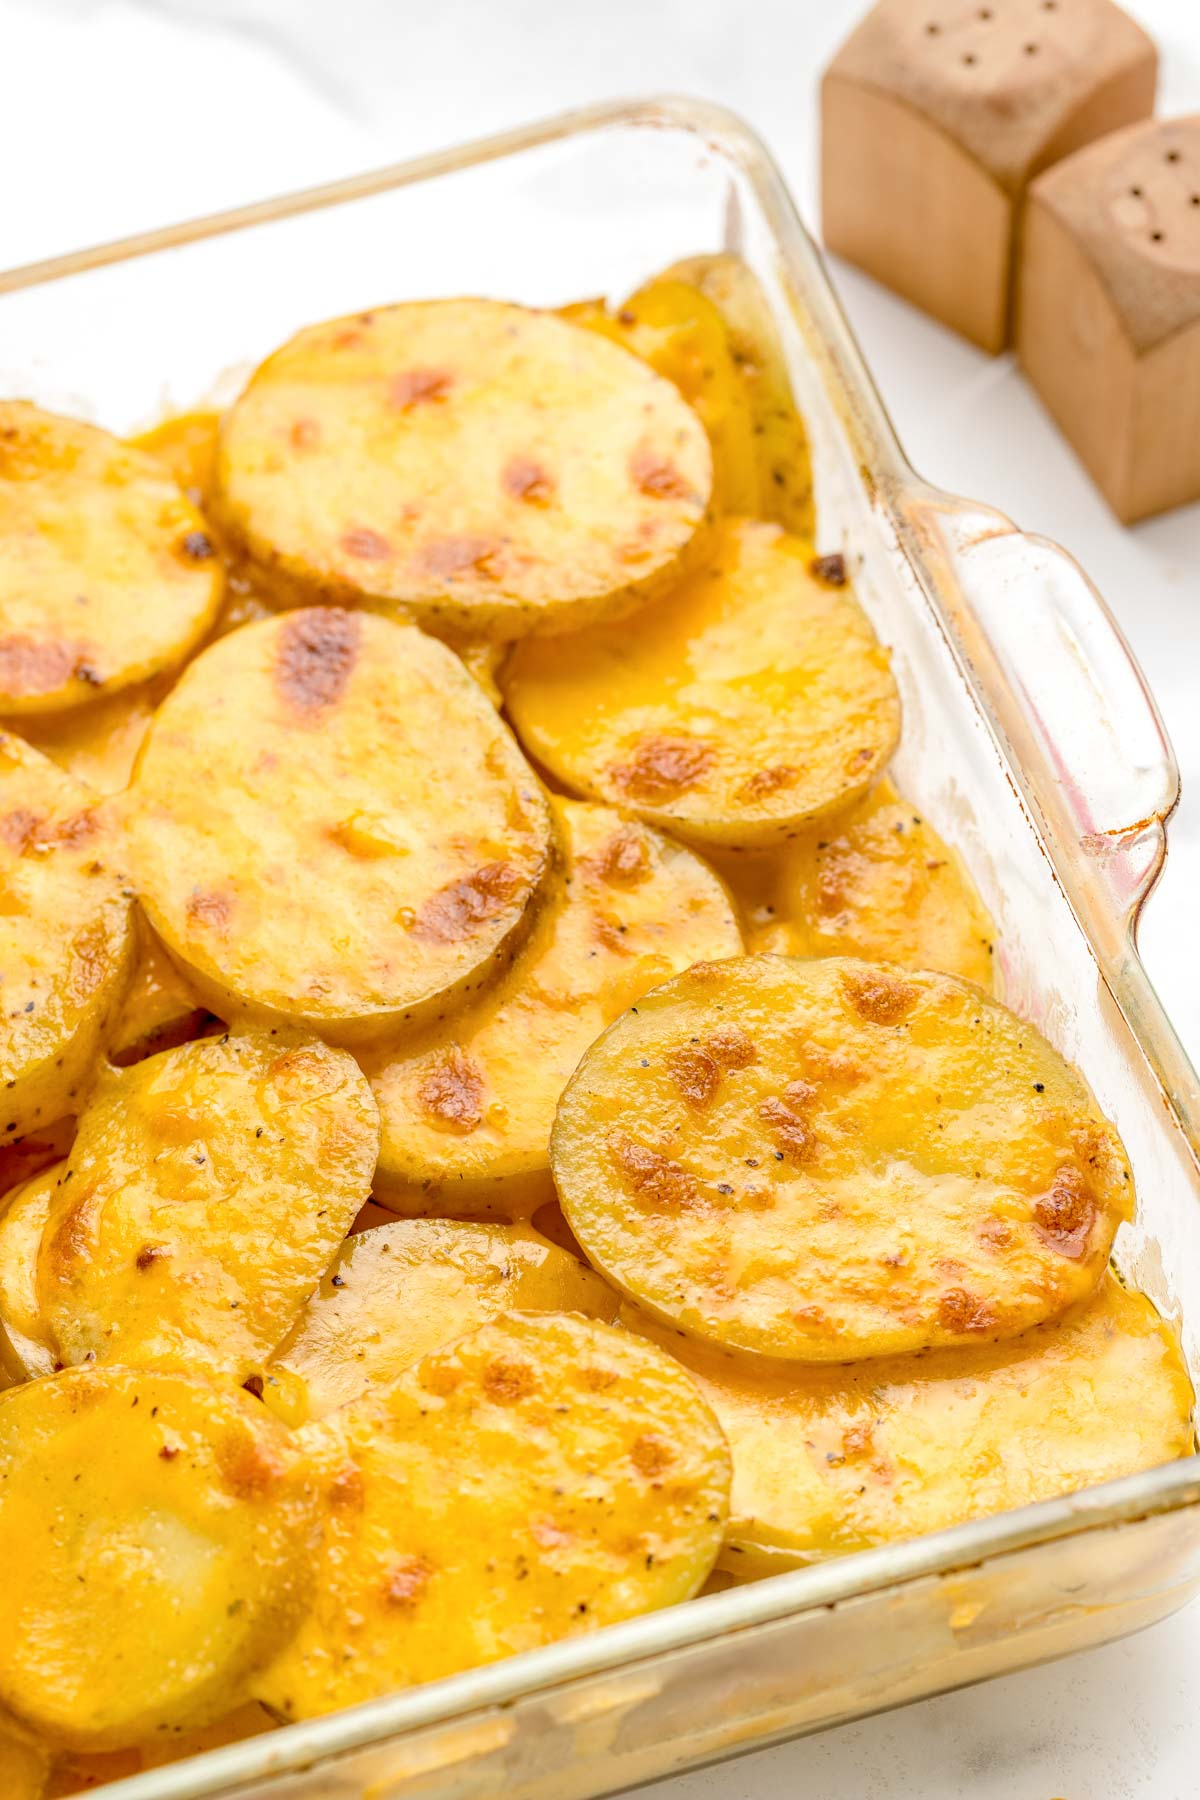 Instant pot scalloped potatoes after being browned in the oven